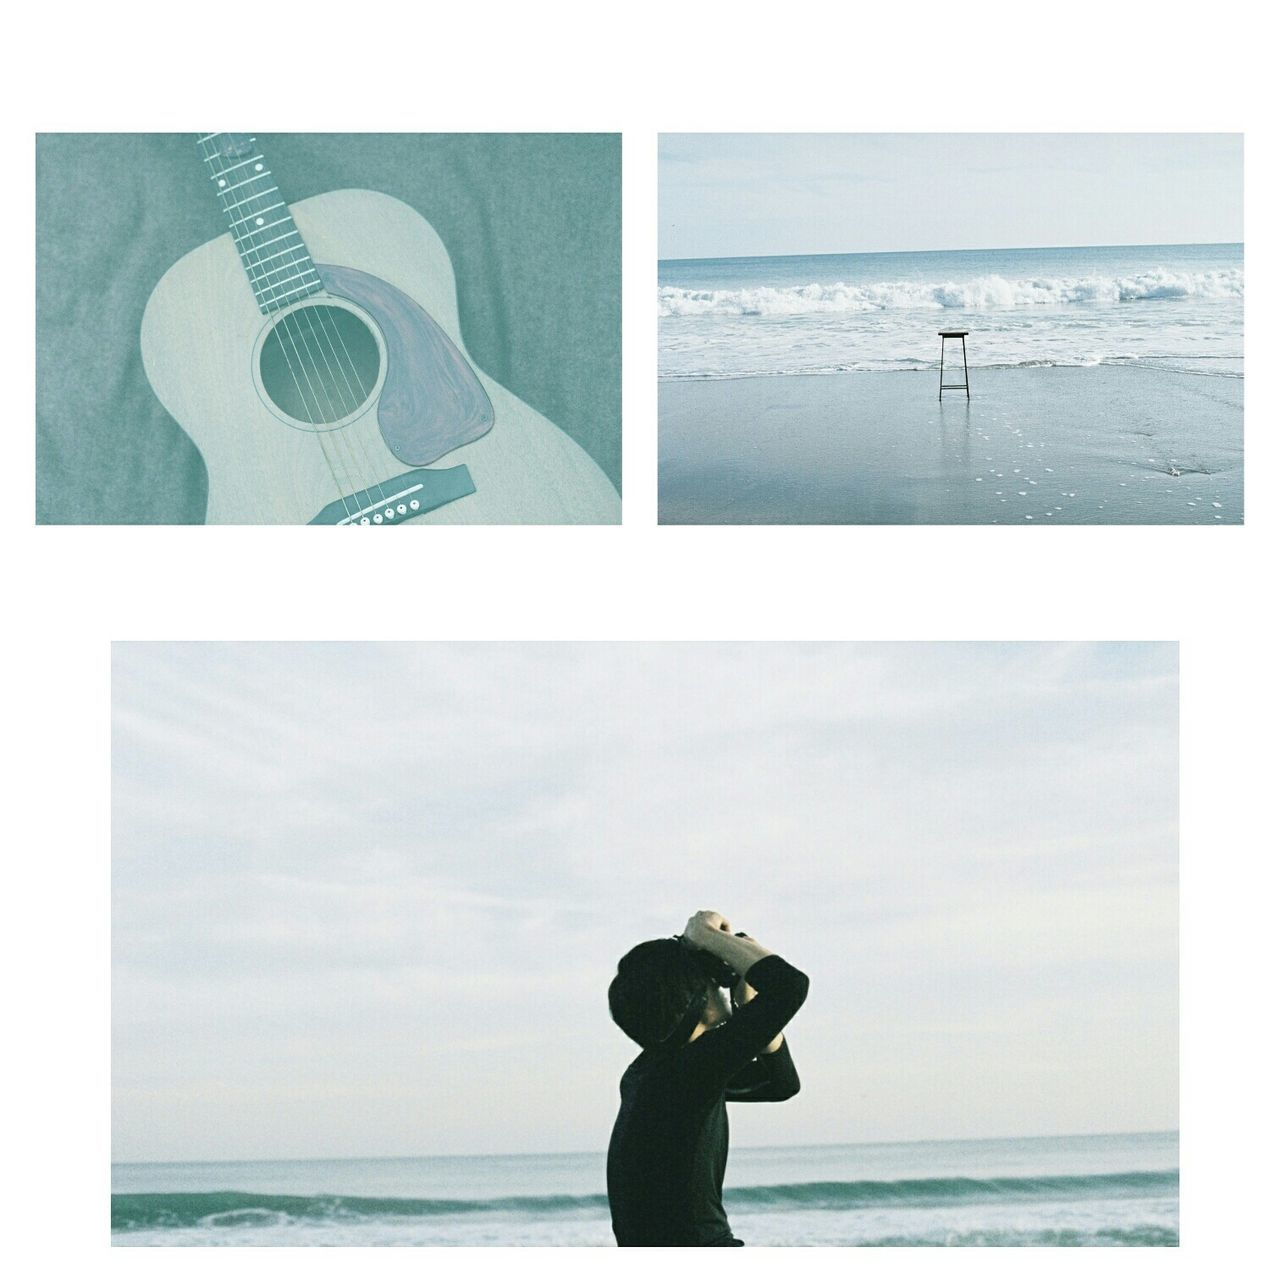 Collage of guitar with photographer and sea